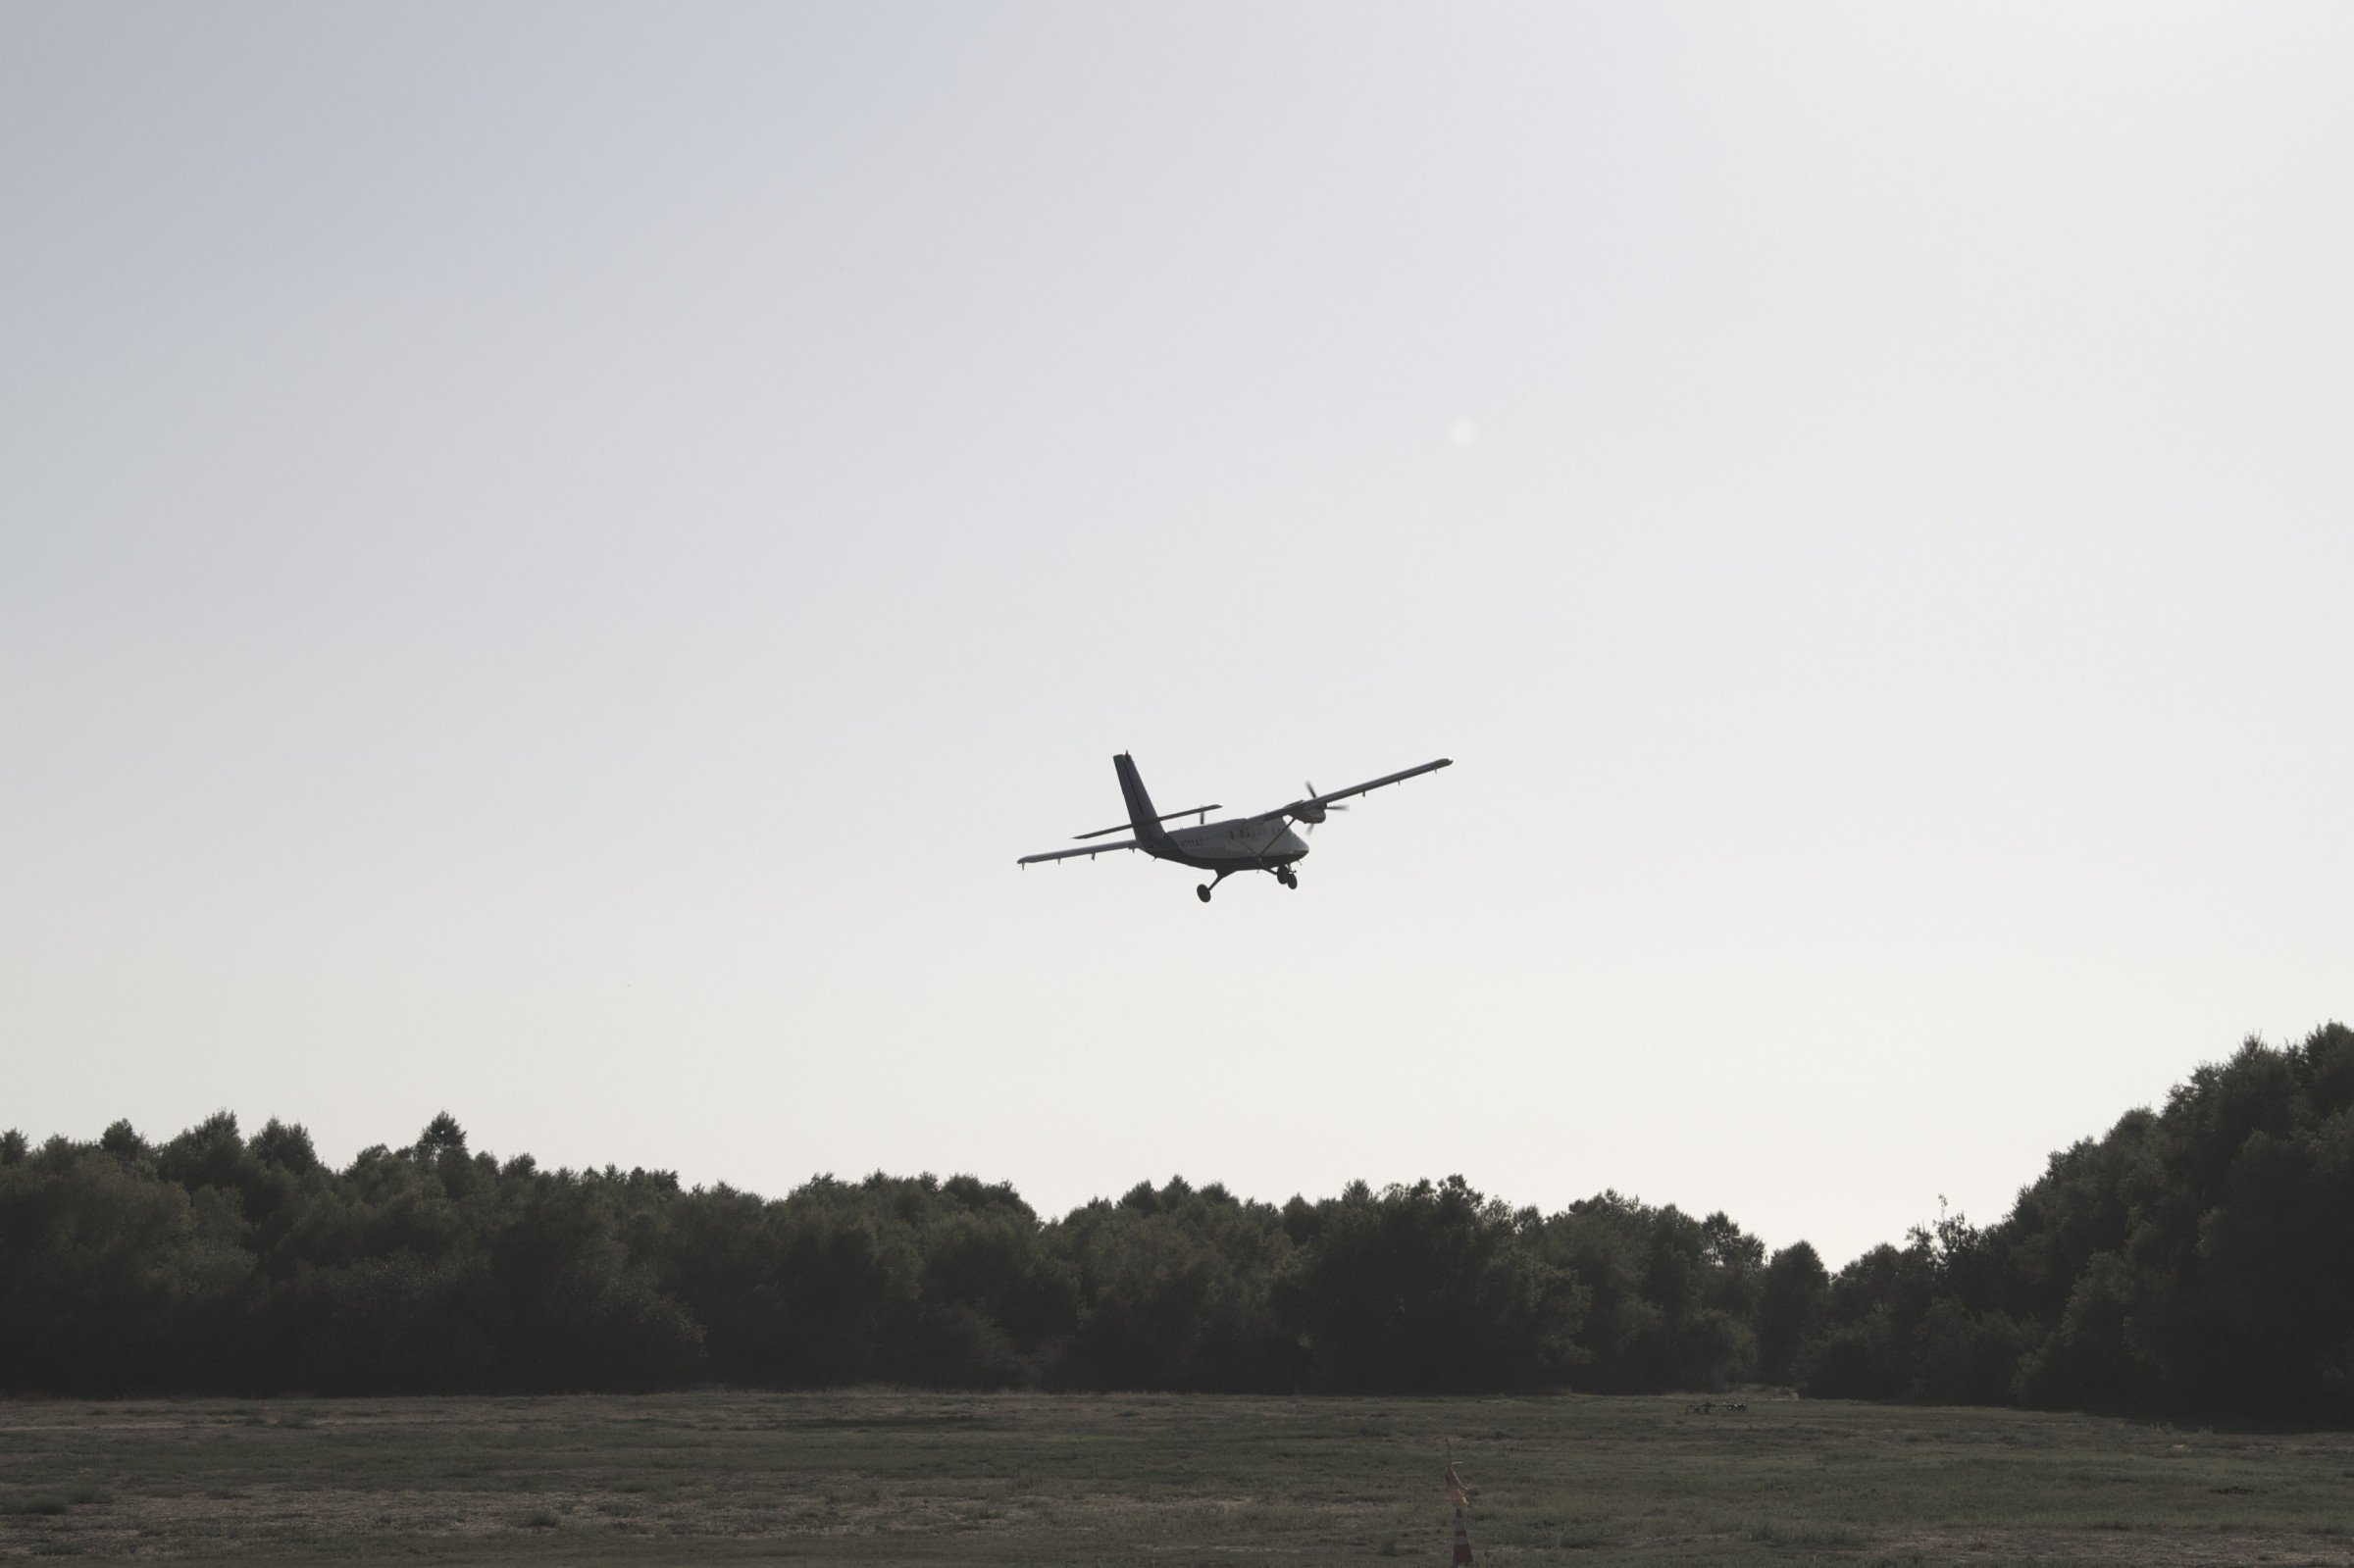 free stock photo of small airplane taking off into distance